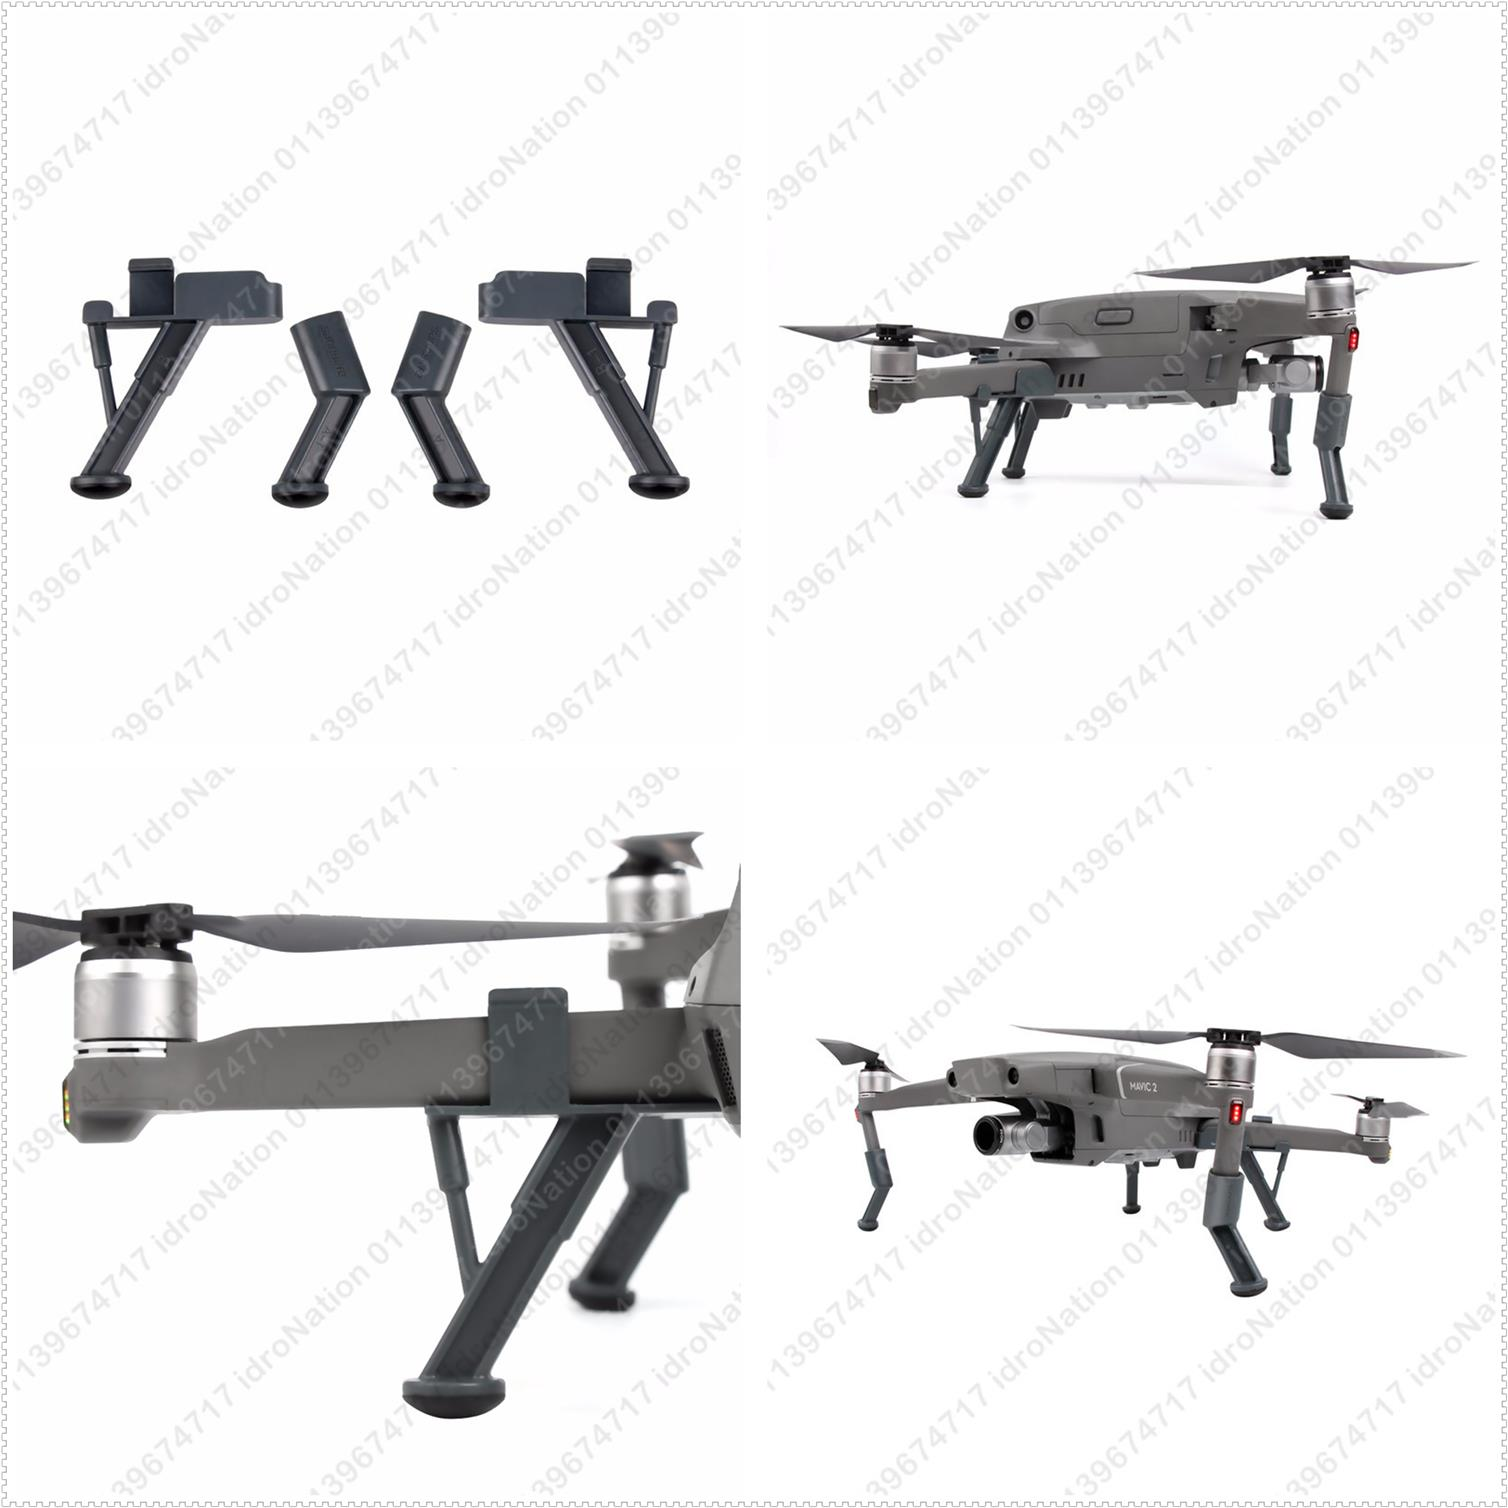 DJI Mavic 2 Pro Zoom Leg Height Extender Landing Gear Shock Absorber